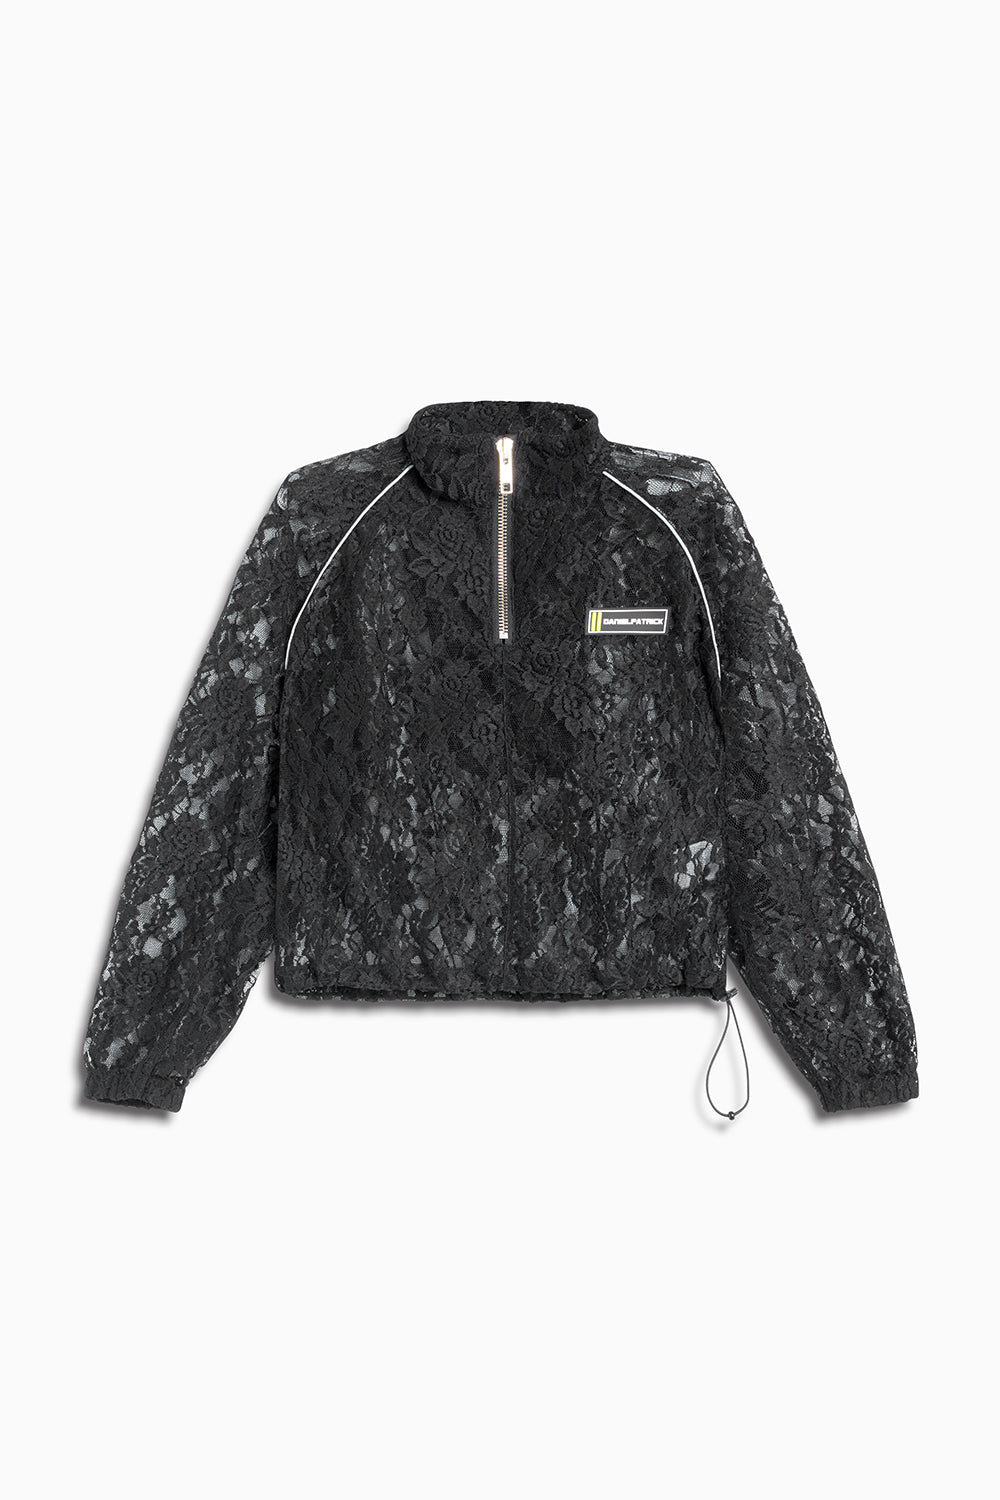 crop batting jacket / black lace